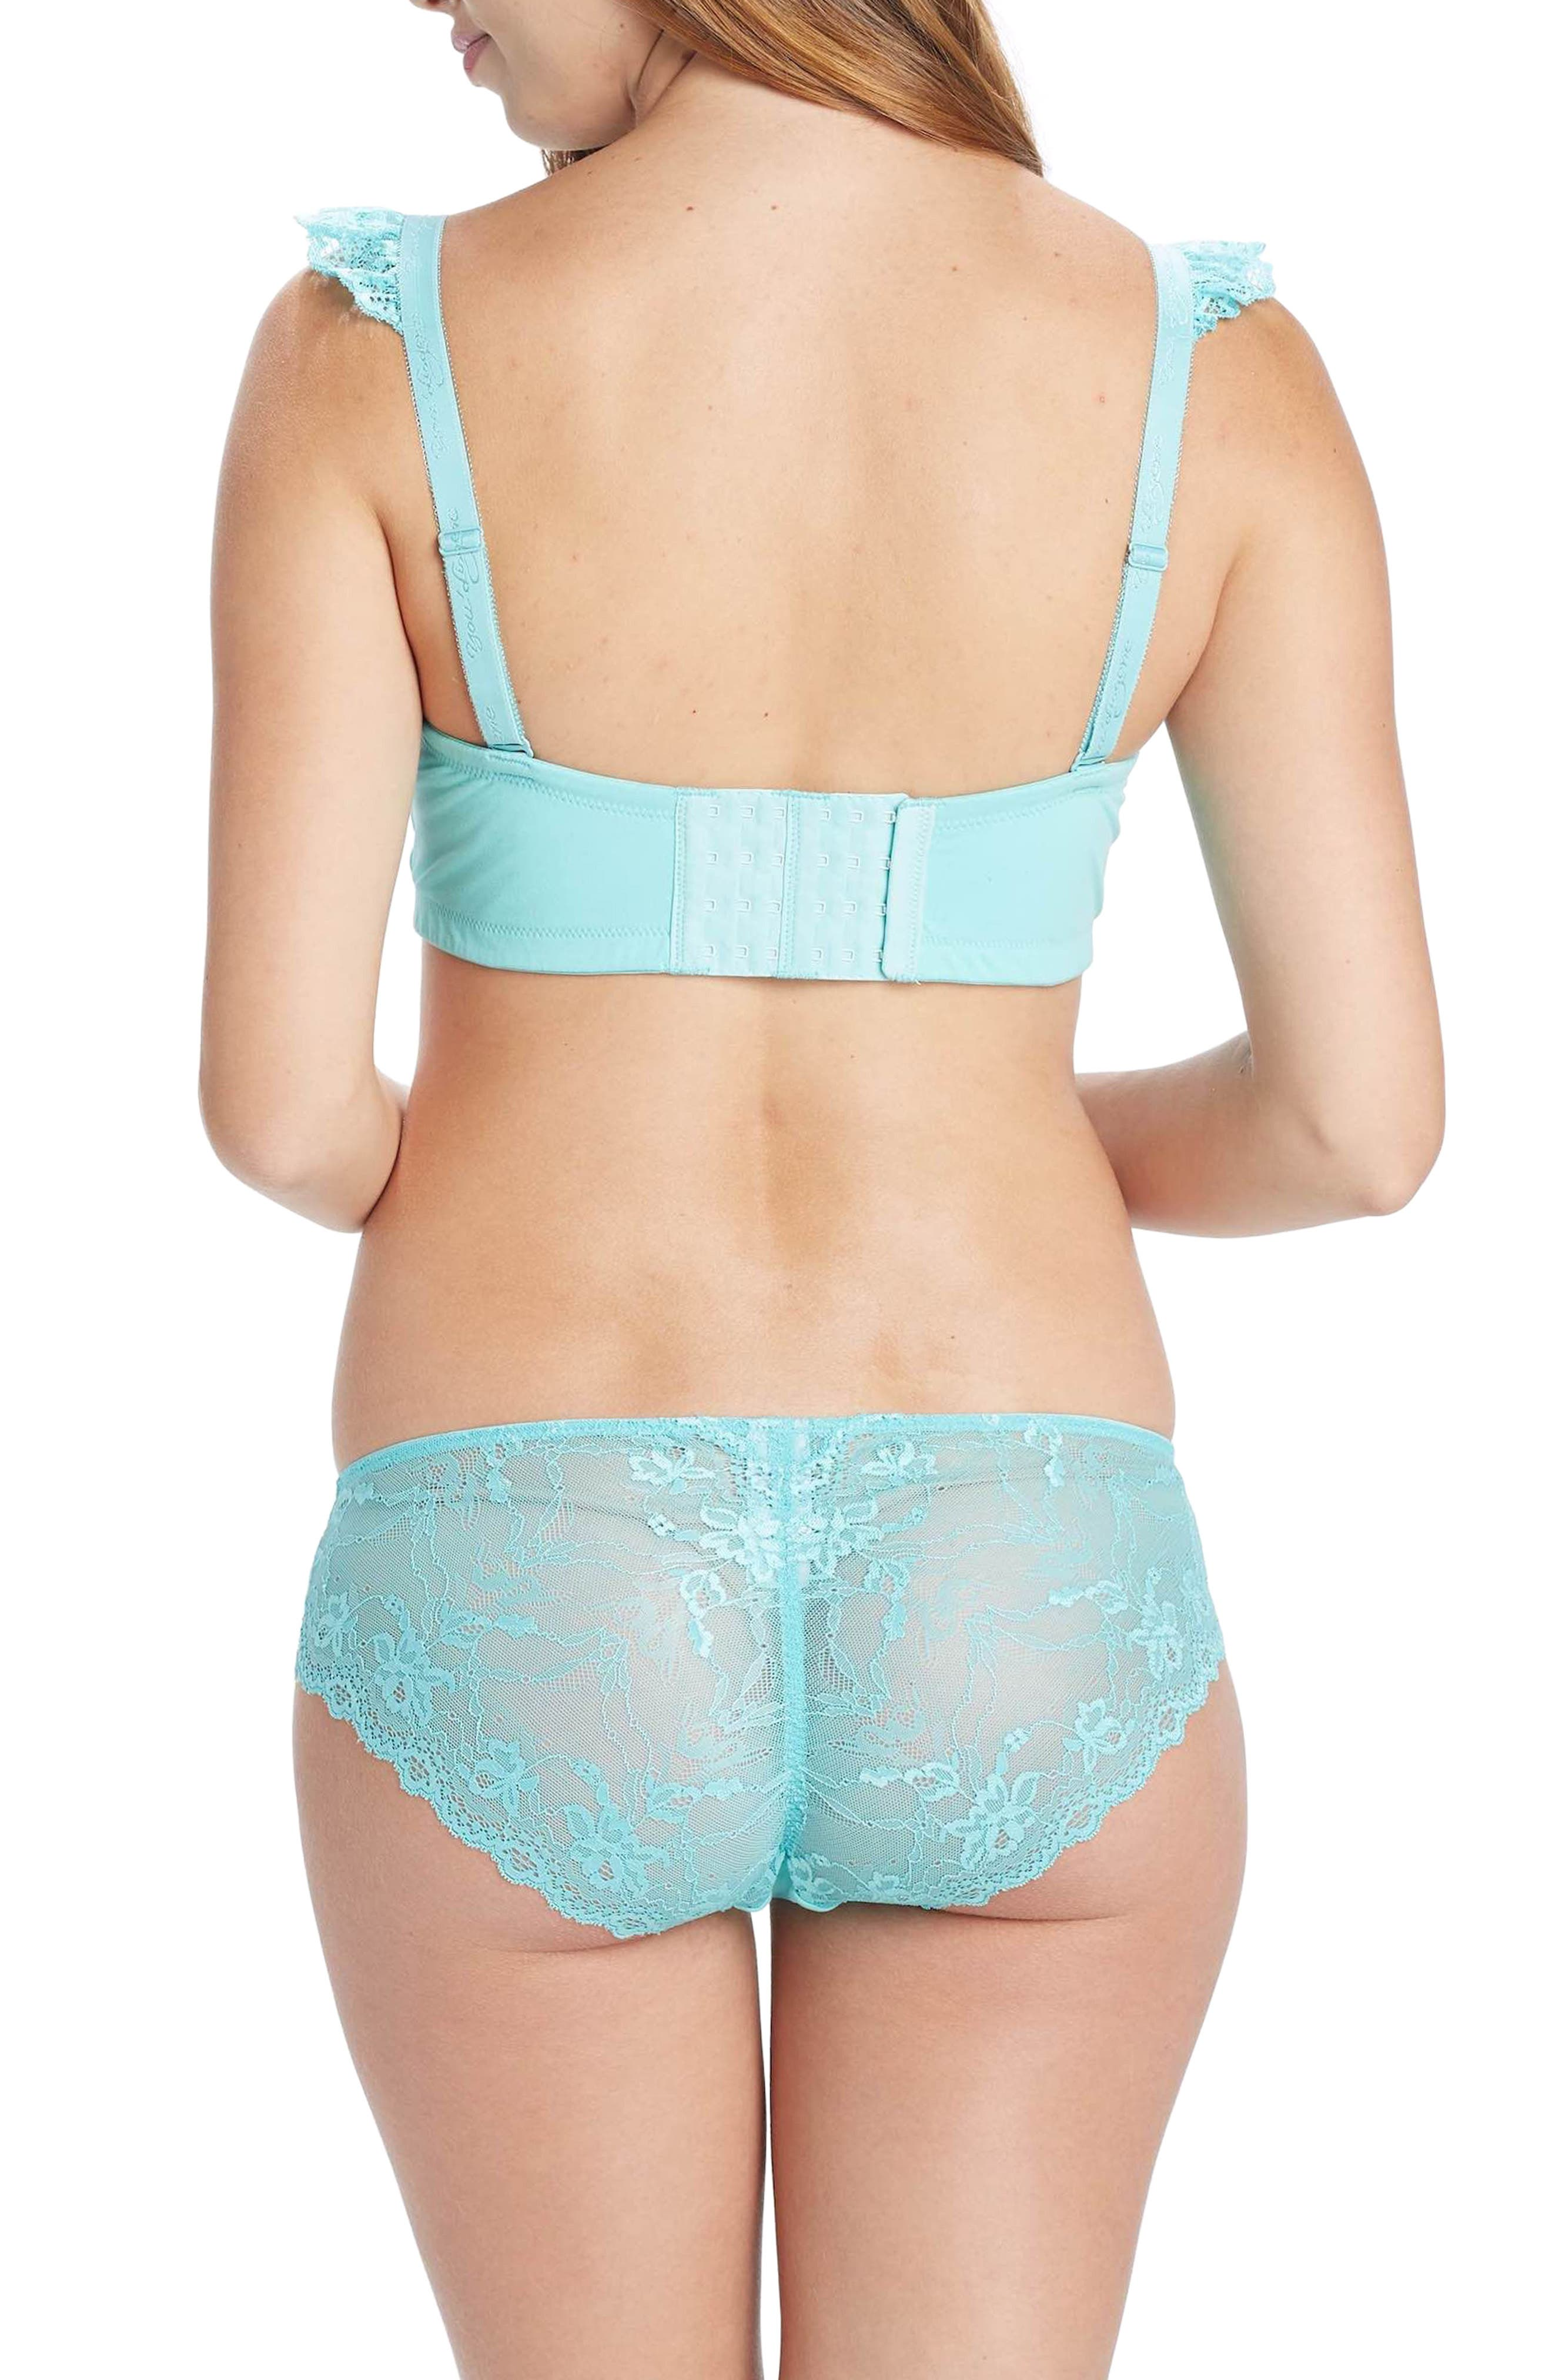 Lark Wireless Maternity/Nursing Bra,                             Alternate thumbnail 2, color,                             TURQUOISE/ AQUA